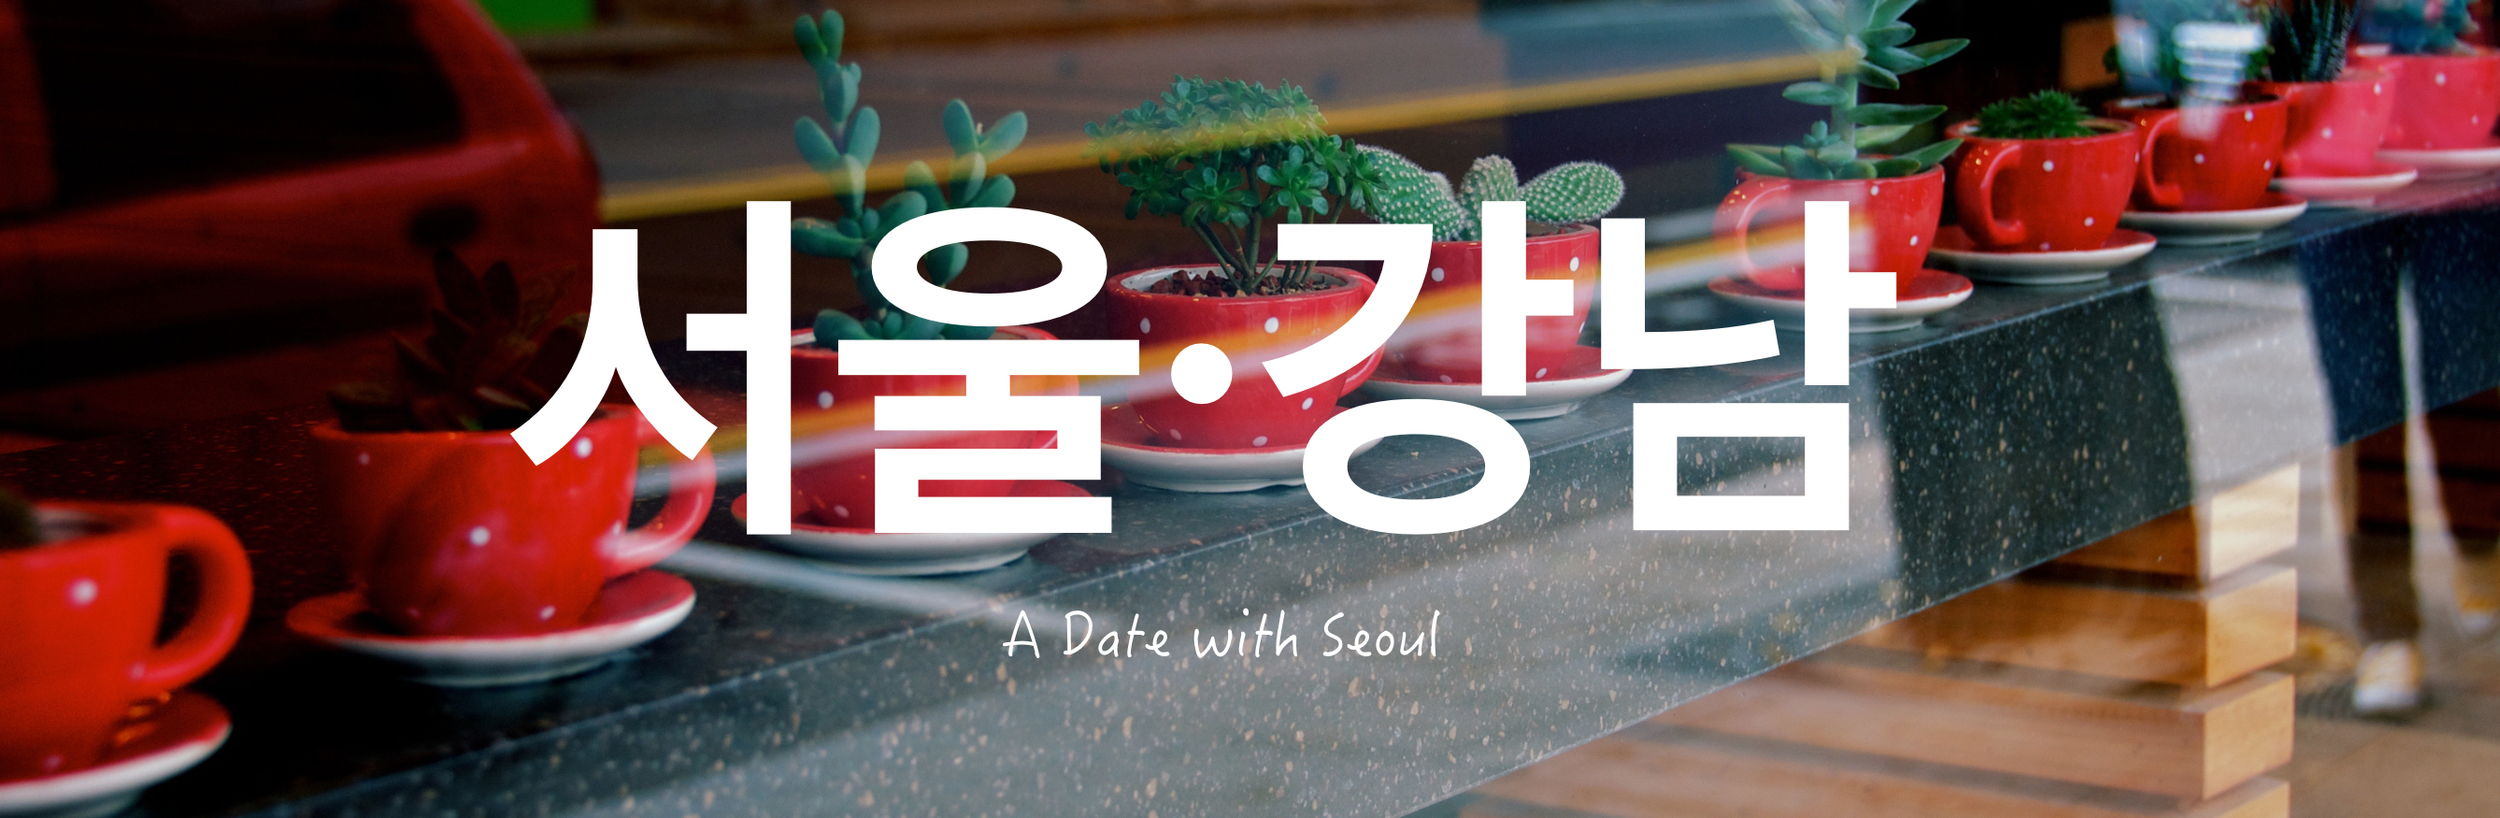 A date with Seoul